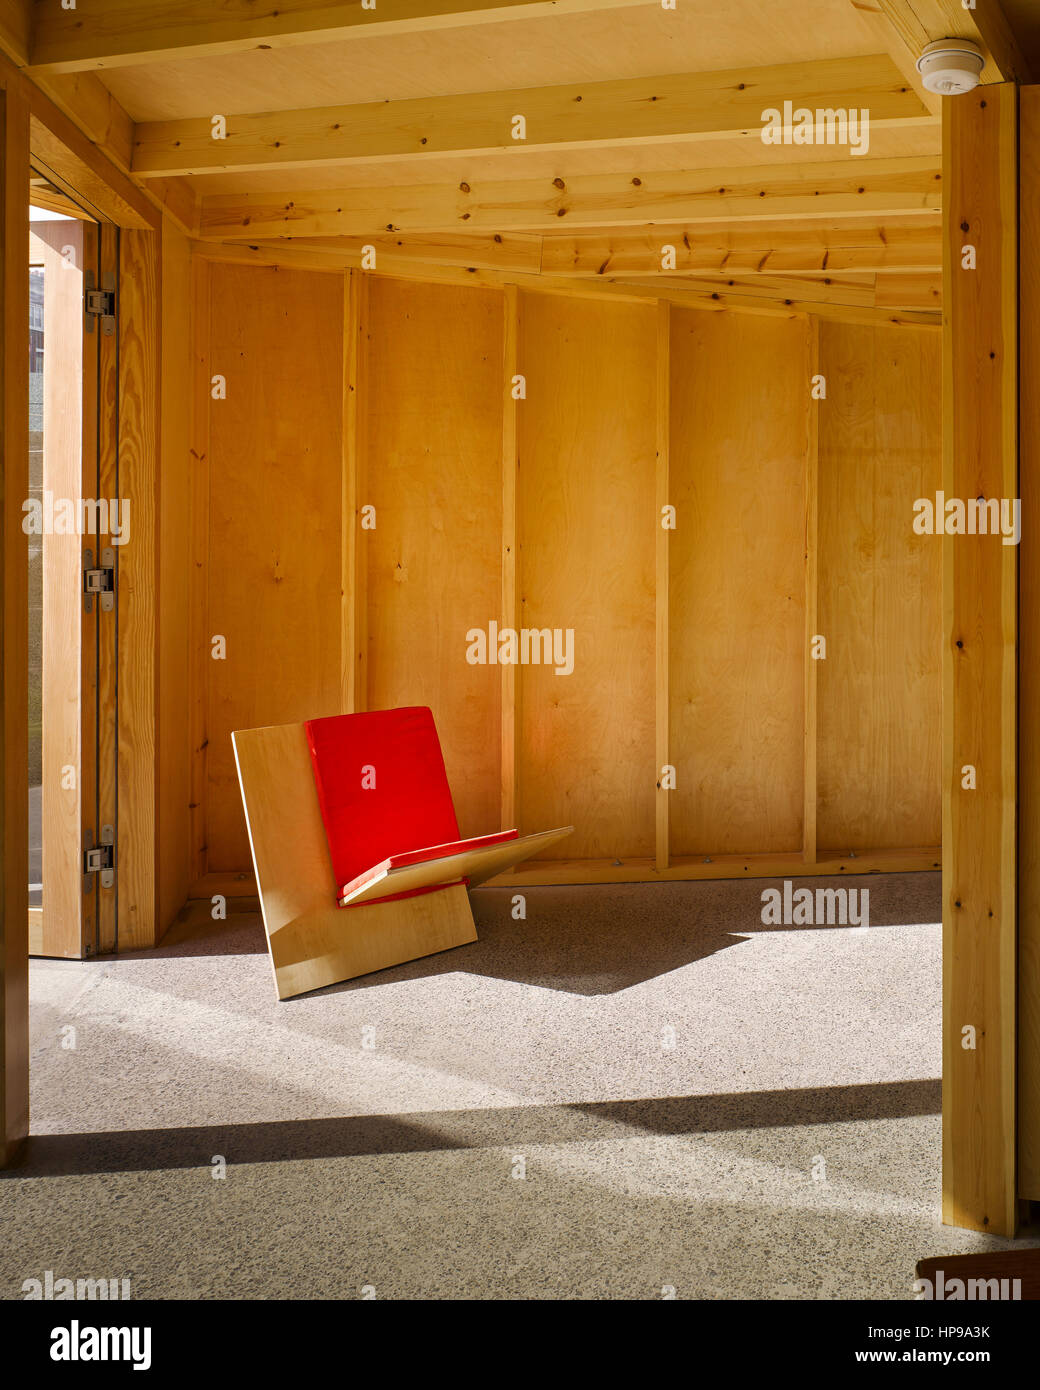 Interior view of new sitting area showing 2 element ply chair with cushion. Rutland Avenue, Crumlin, Ireland. Architect: - Stock Image